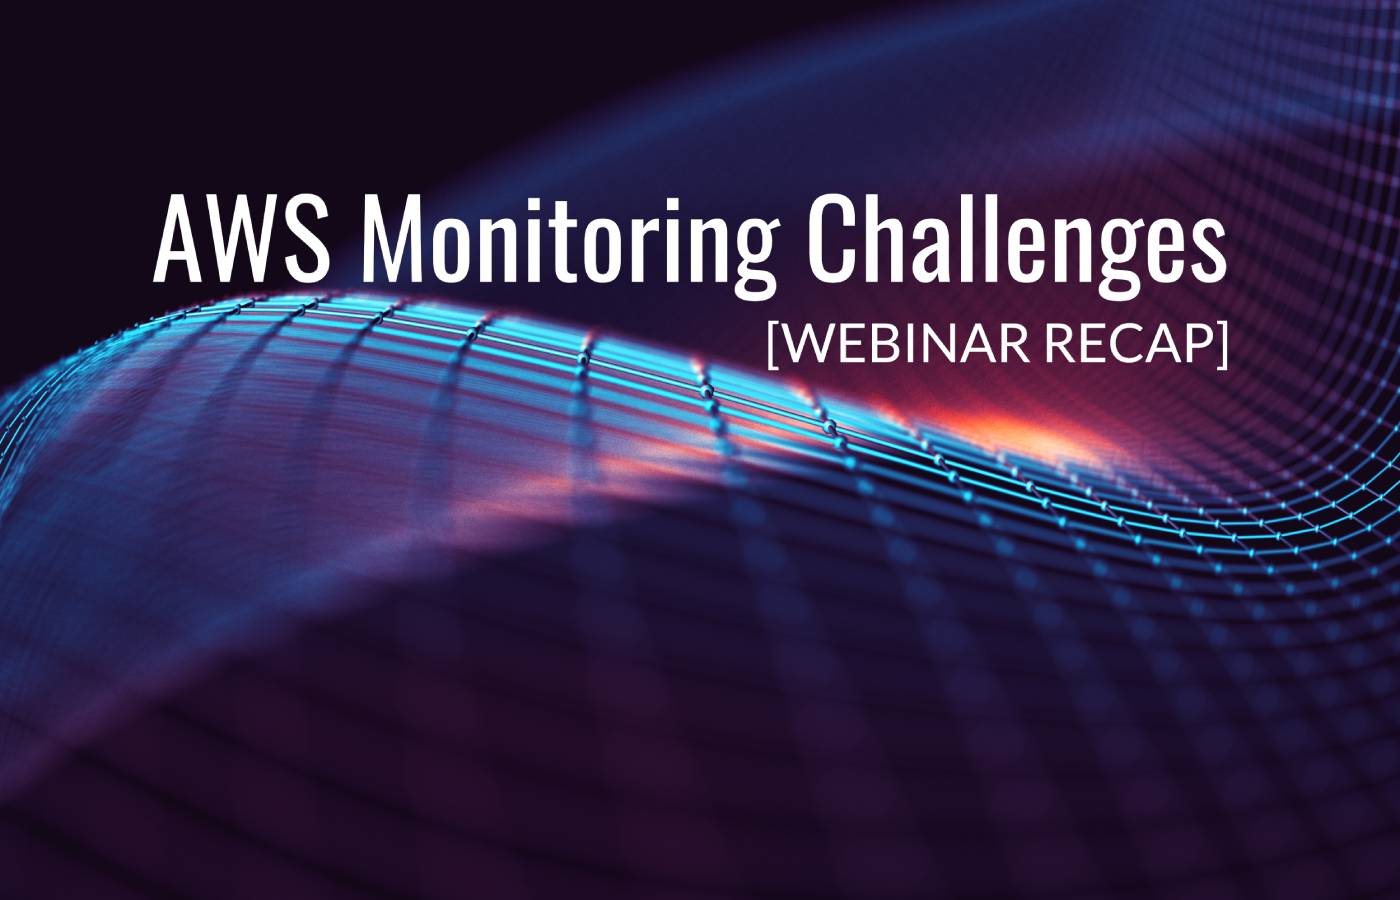 AWS Monitoring Challenges